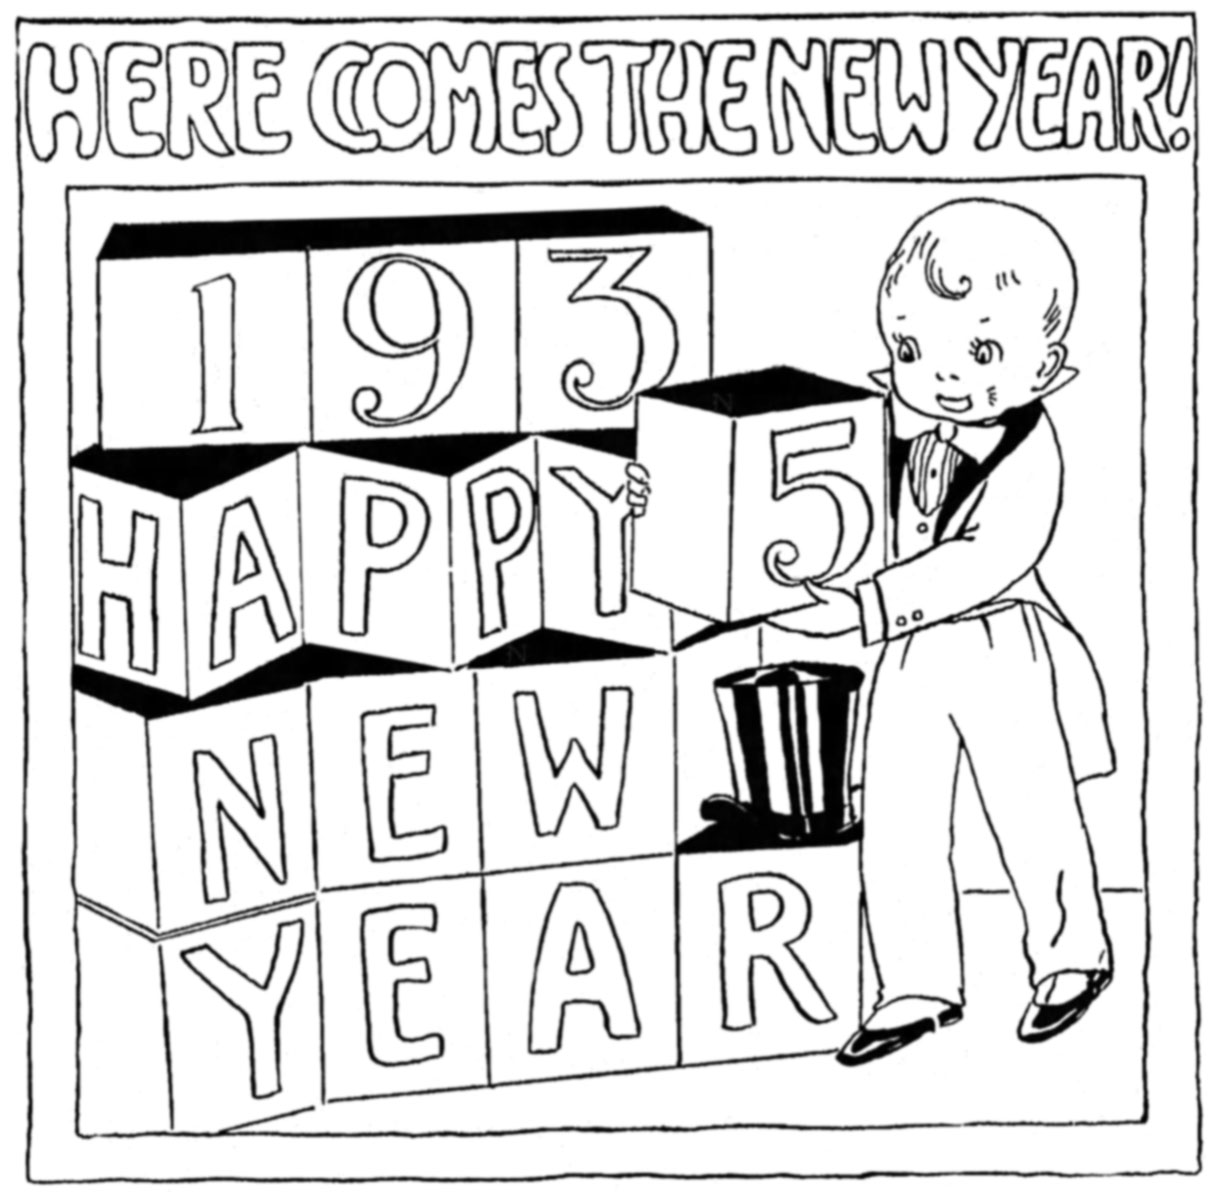 Here-Comes-the-New-Year-1935